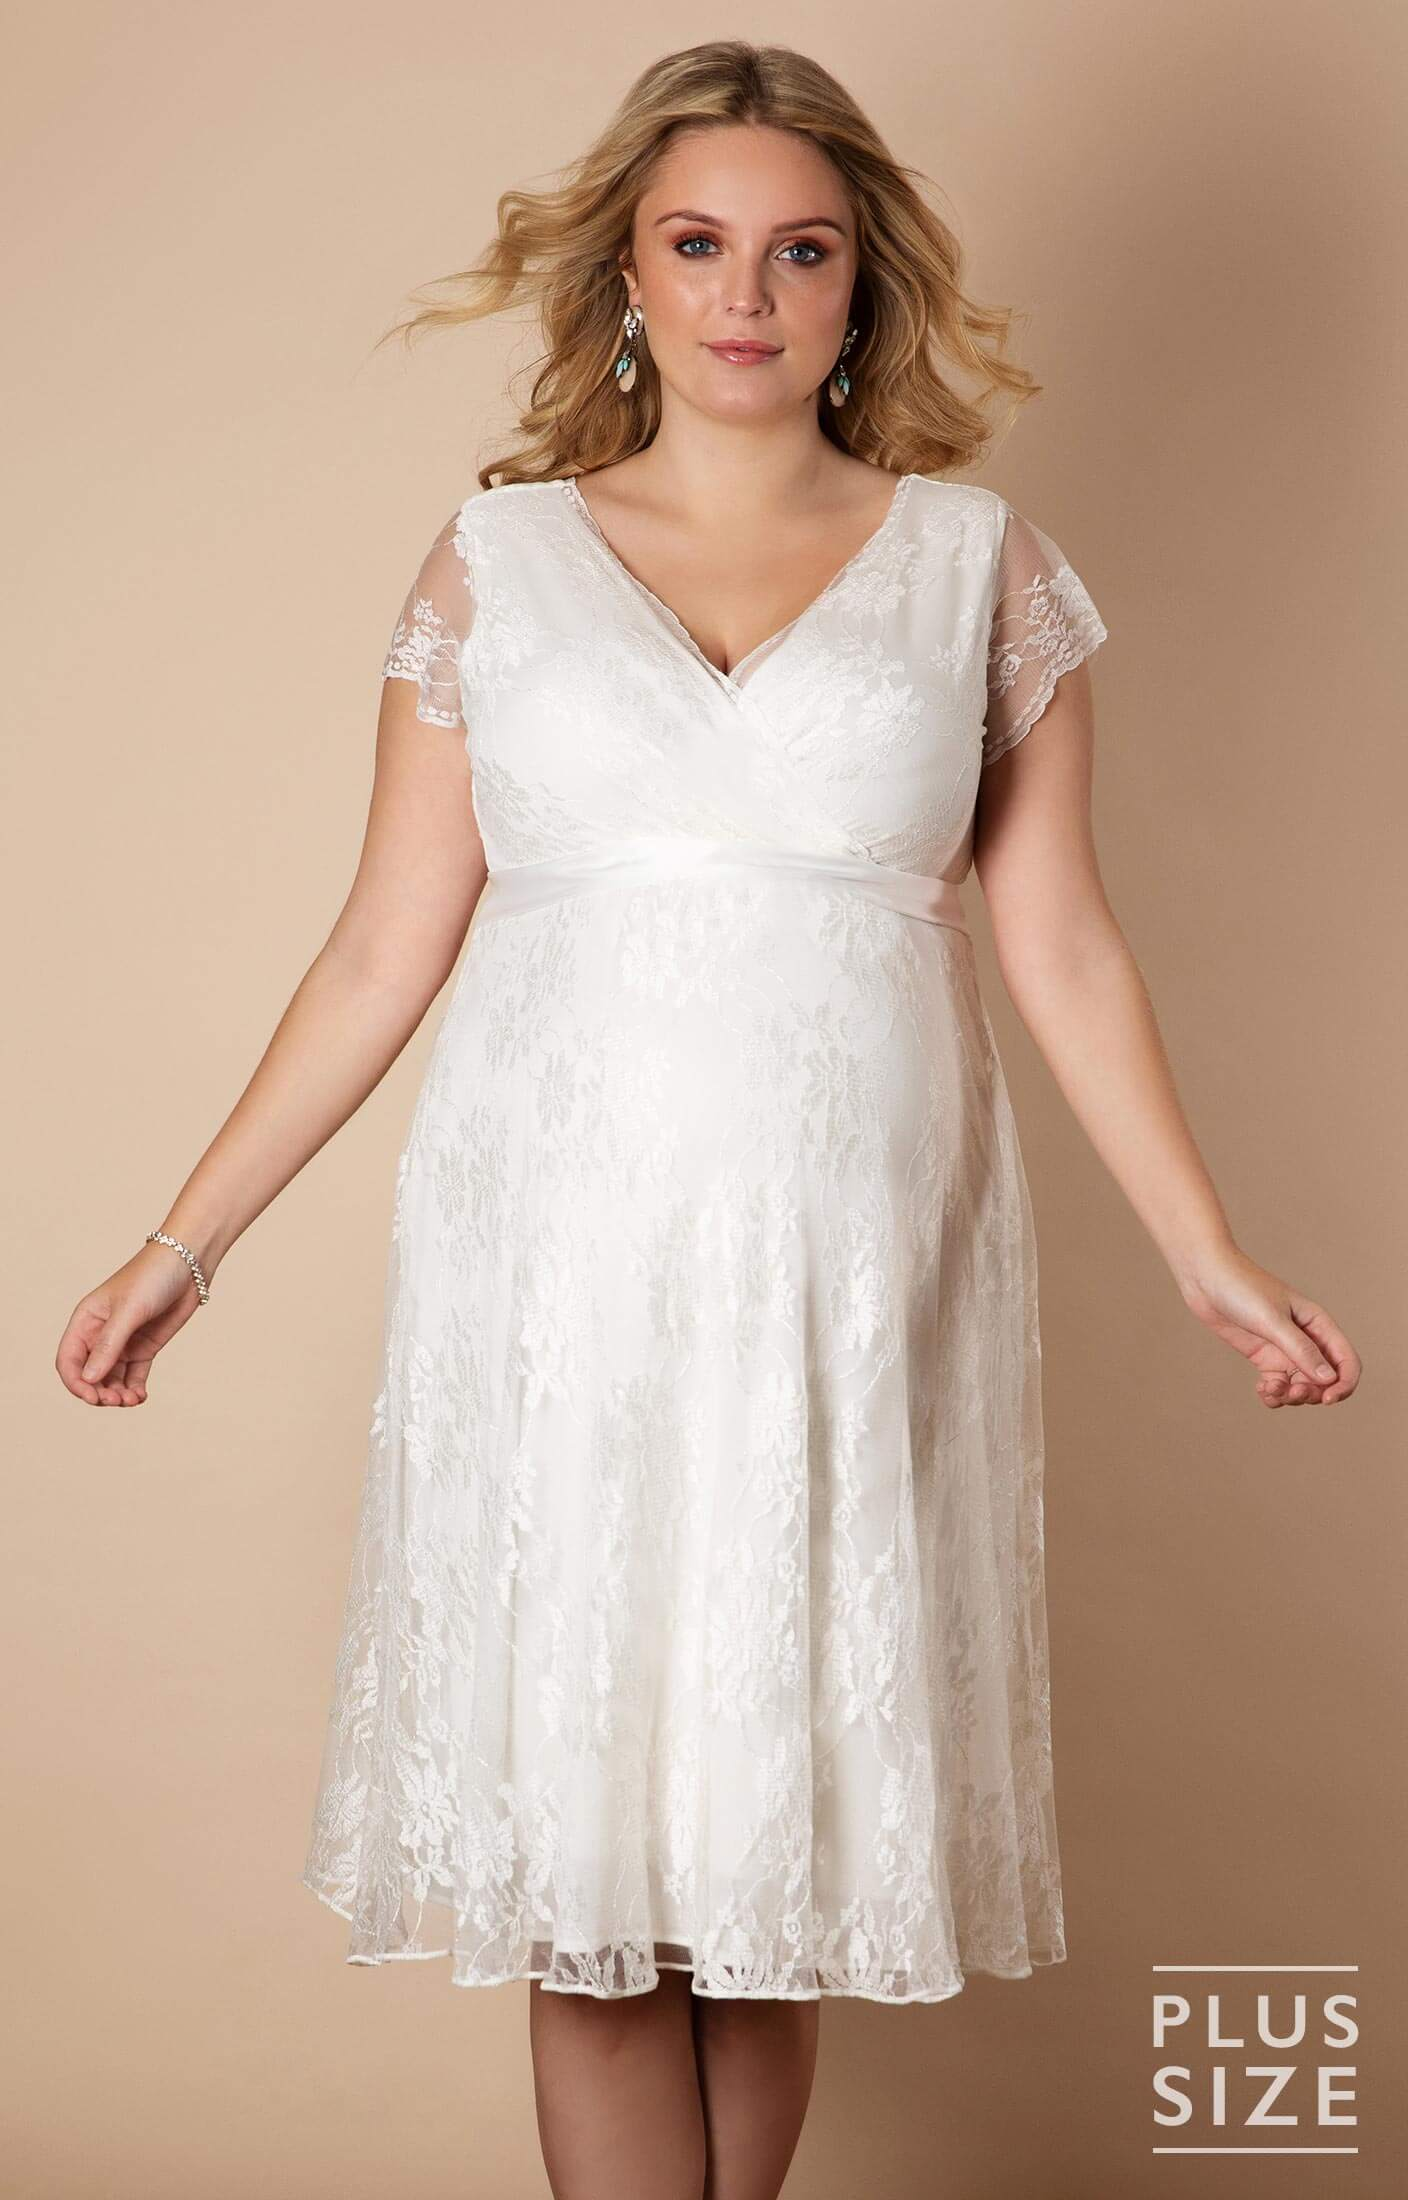 Eden Gown Short Plus Size Maternity Wedding Dress - Maternity Wedding  Dresses, Evening Wear and Party Clothes by Tiffany Rose